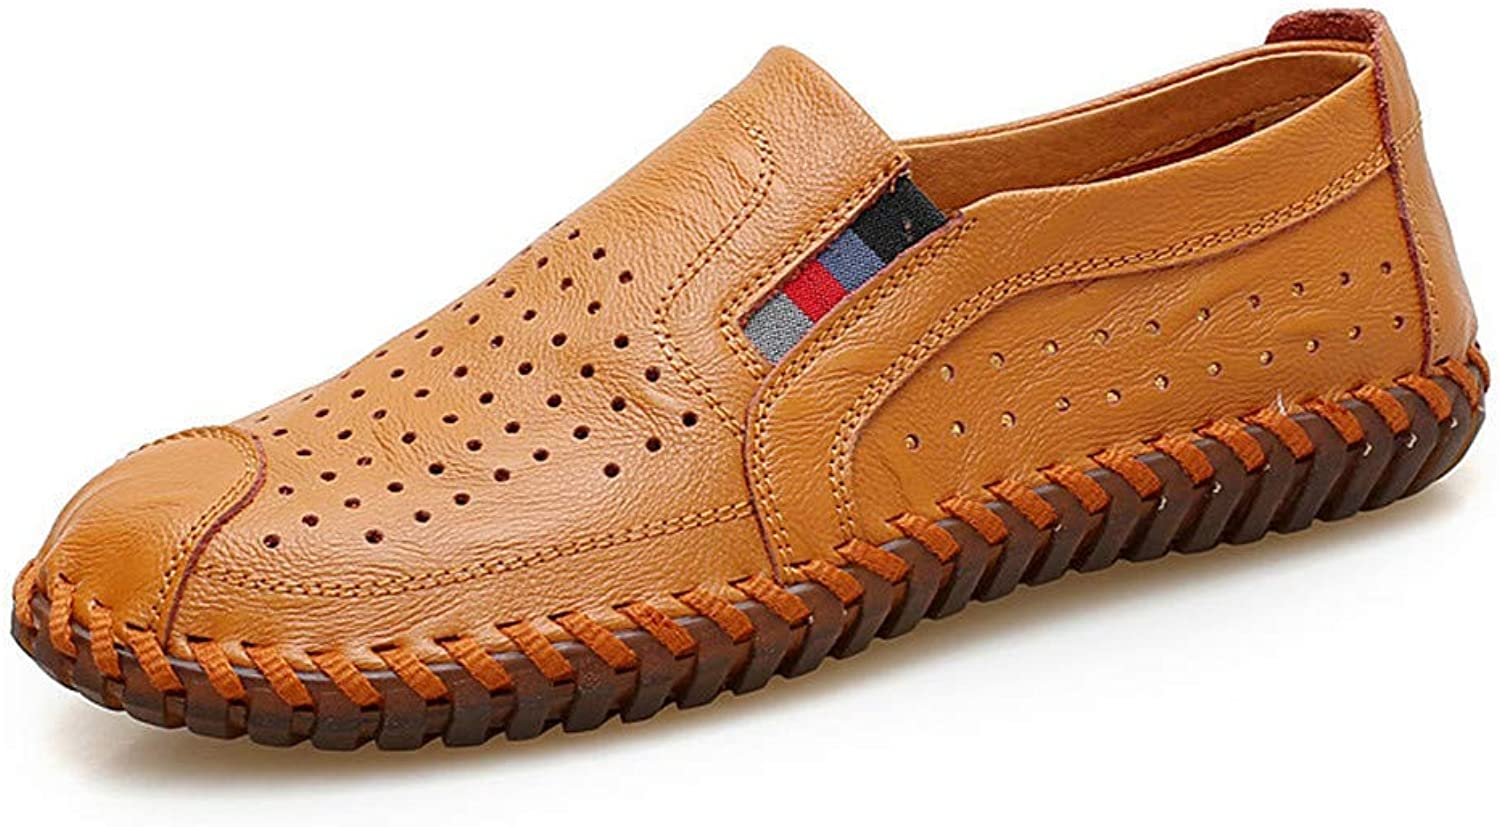 ZHRUI Men Sandals Loafers Casual shoes Handmade Leather Moccasins shoes Slippers Size 46 (color   Yellow Brown, Size   7 UK)